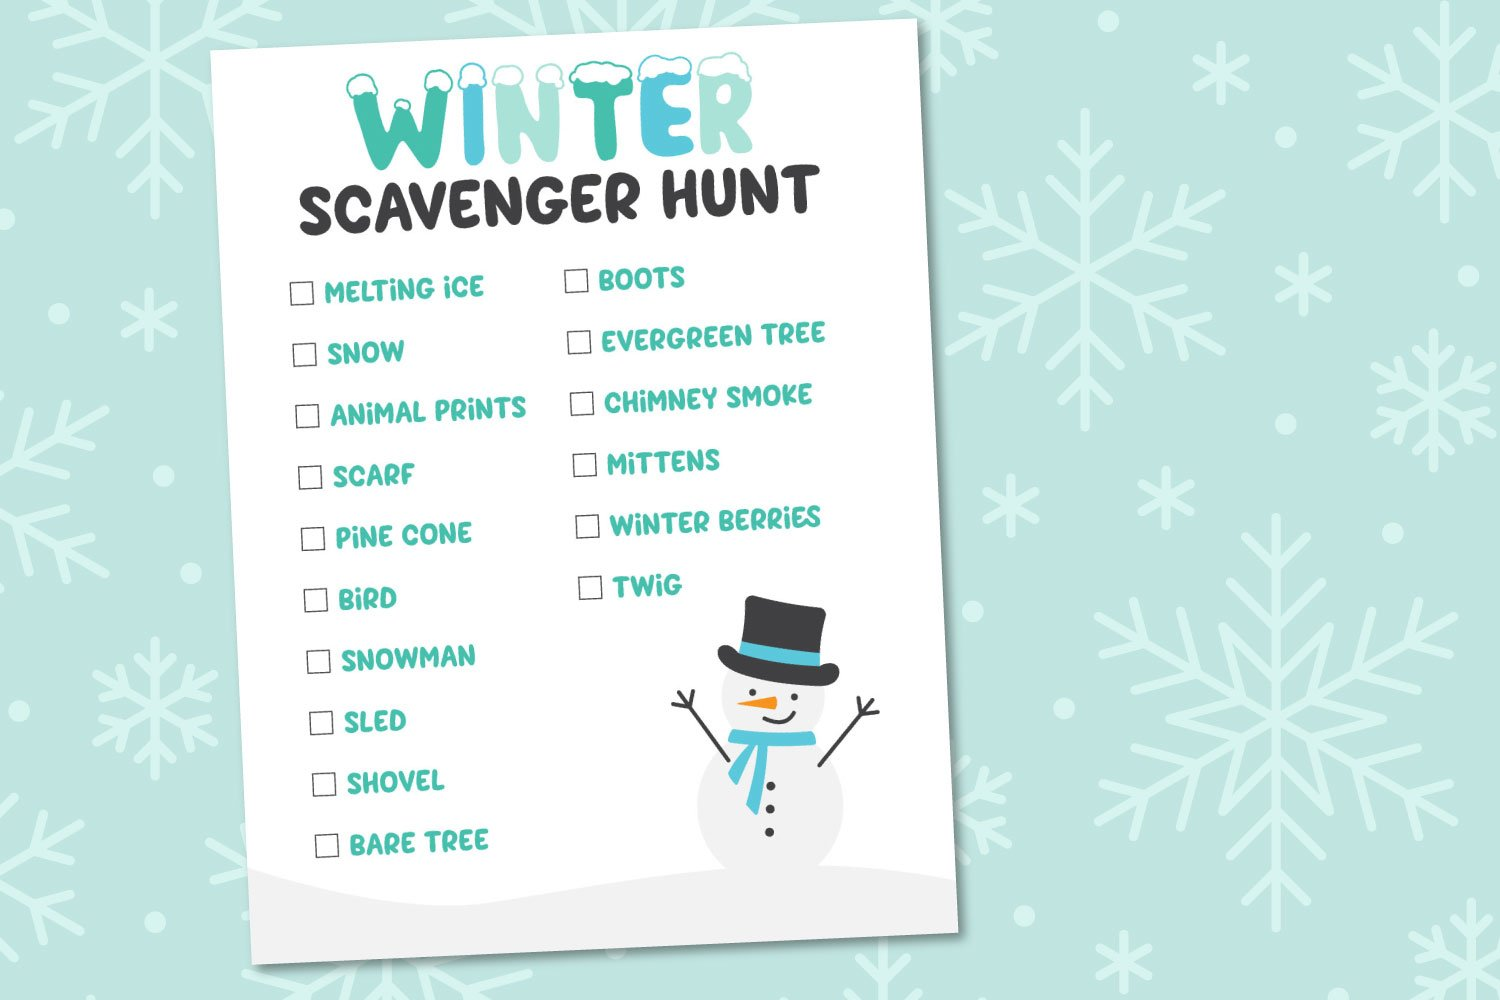 Winter Scavenger Hunt on snowy background